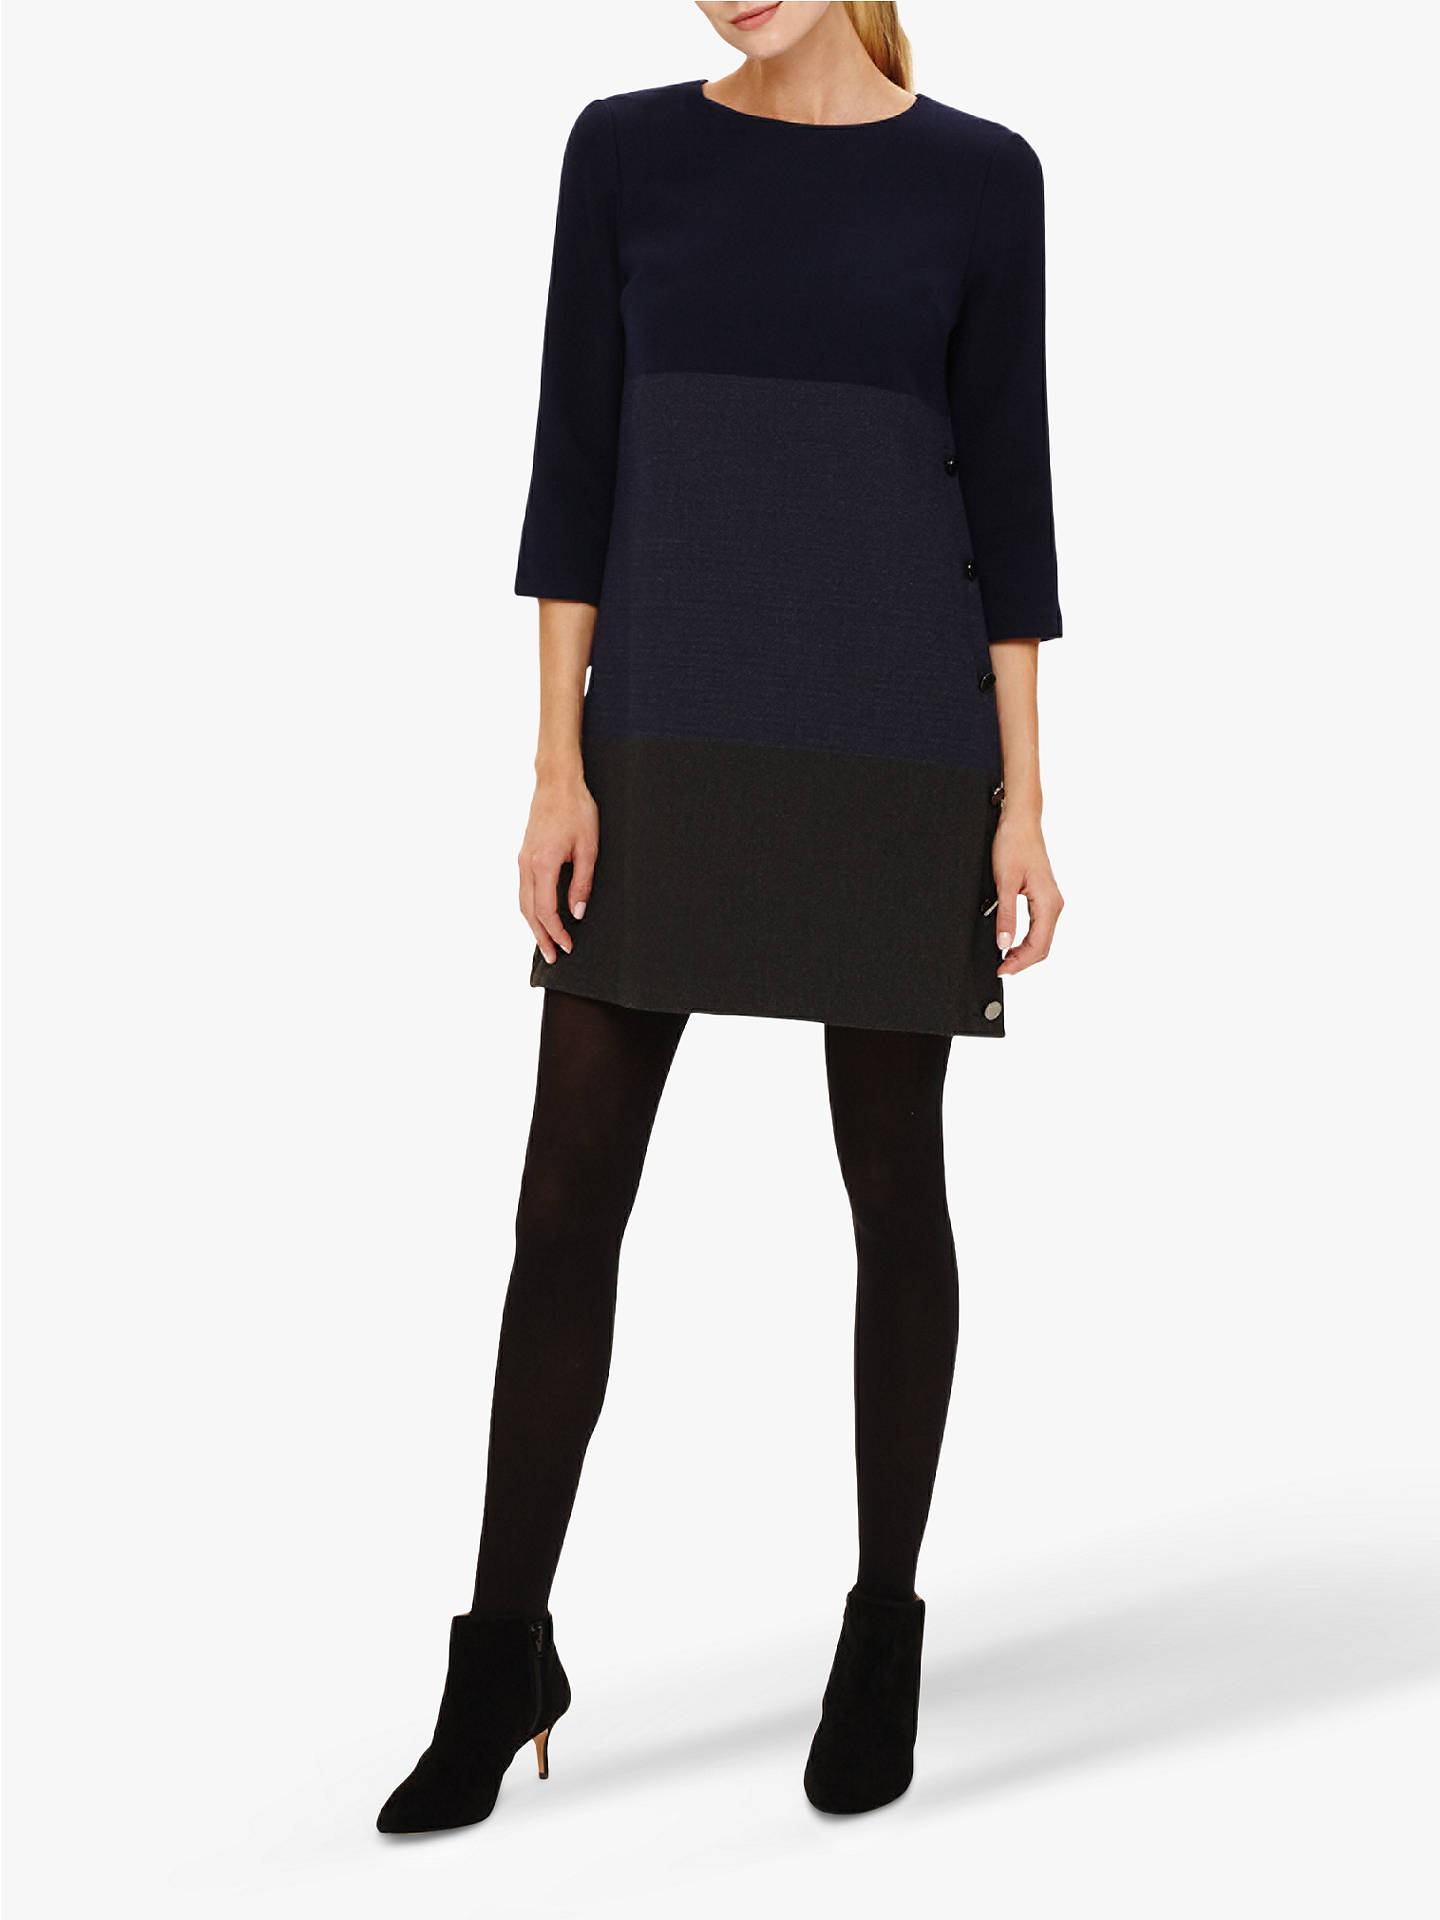 BuyPhase Eight Hillary Dress, Navy/Charcoal, 8 Online at johnlewis.com